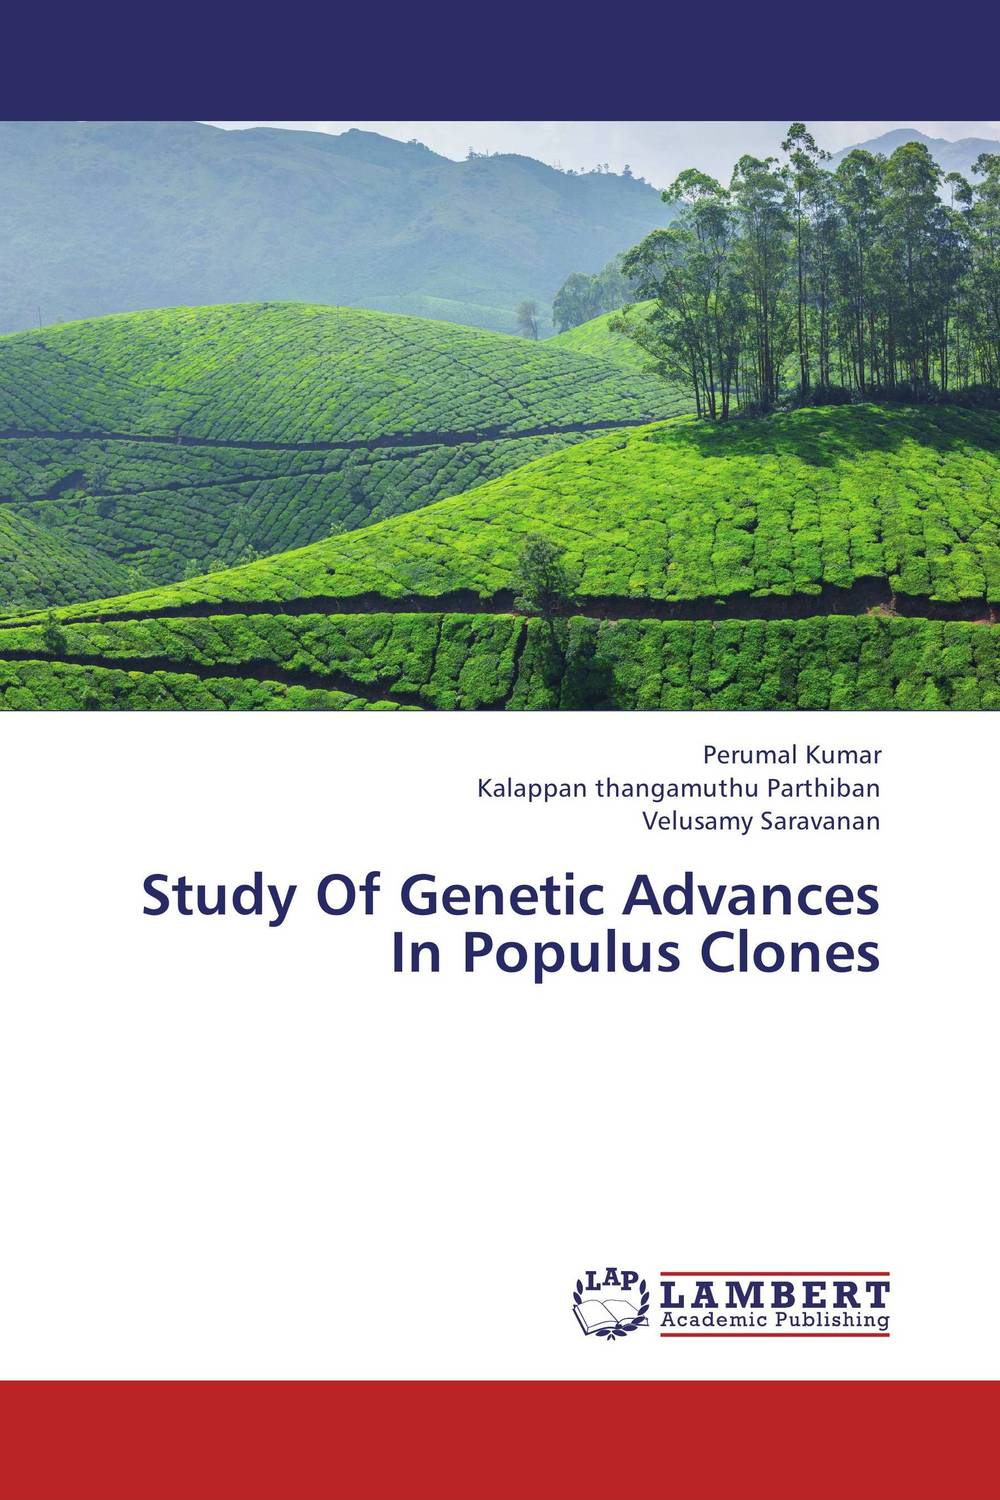 Study Of Genetic Advances In Populus Clones gnanasekar s and chandrasekhar c n carbon sequestration in multipurpose tree species at seedling stage